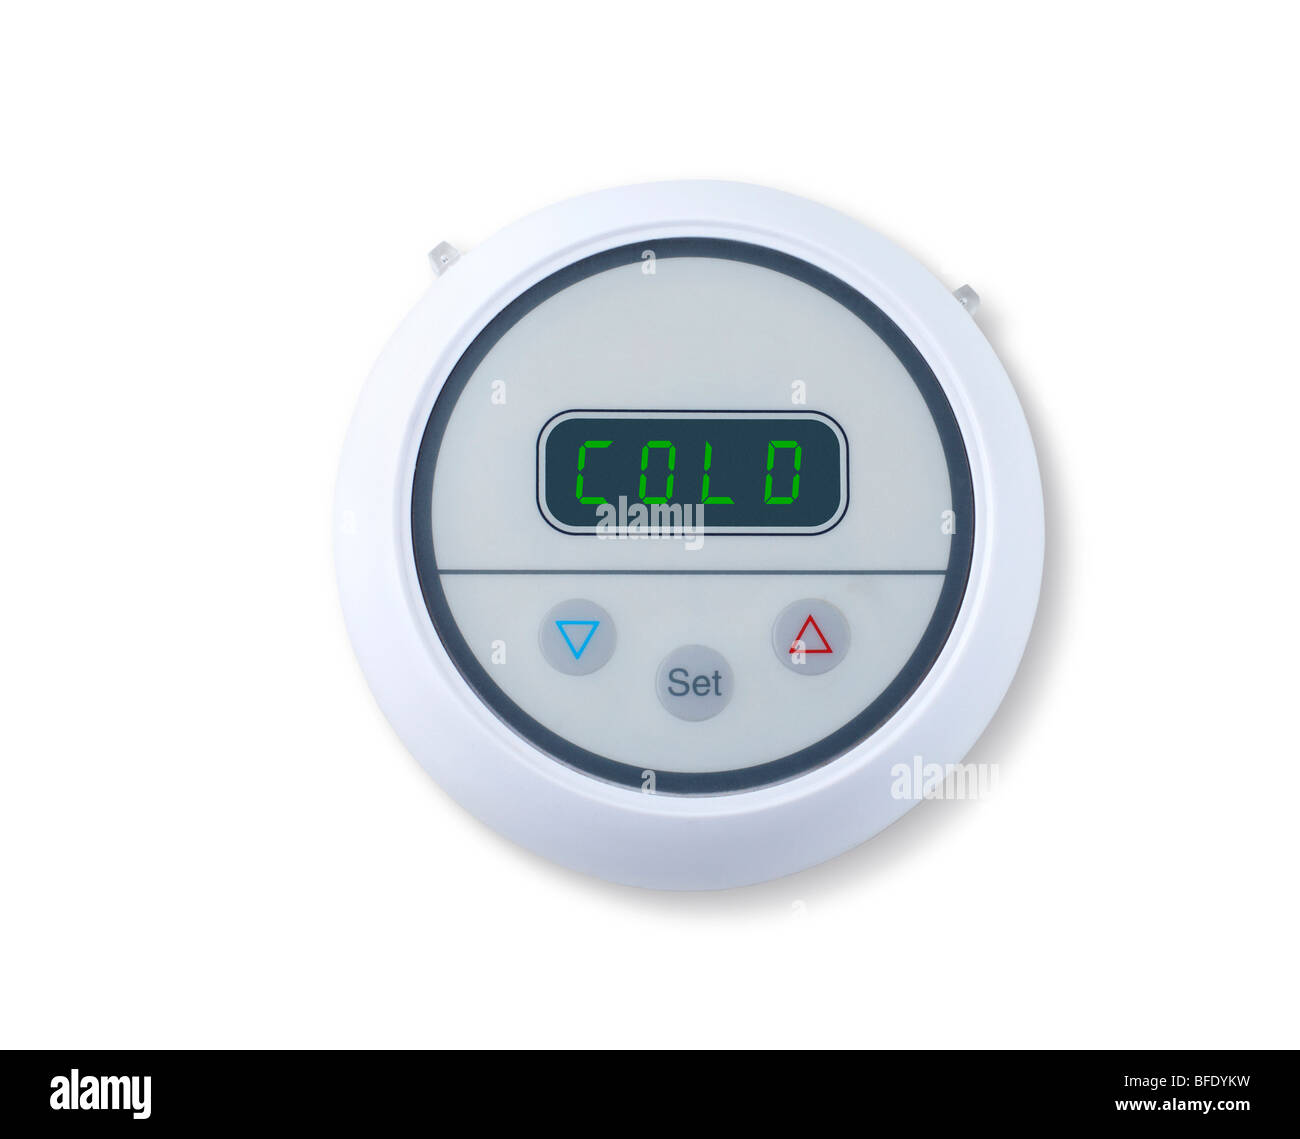 Digital wall thermostat indicating cold - Stock Image